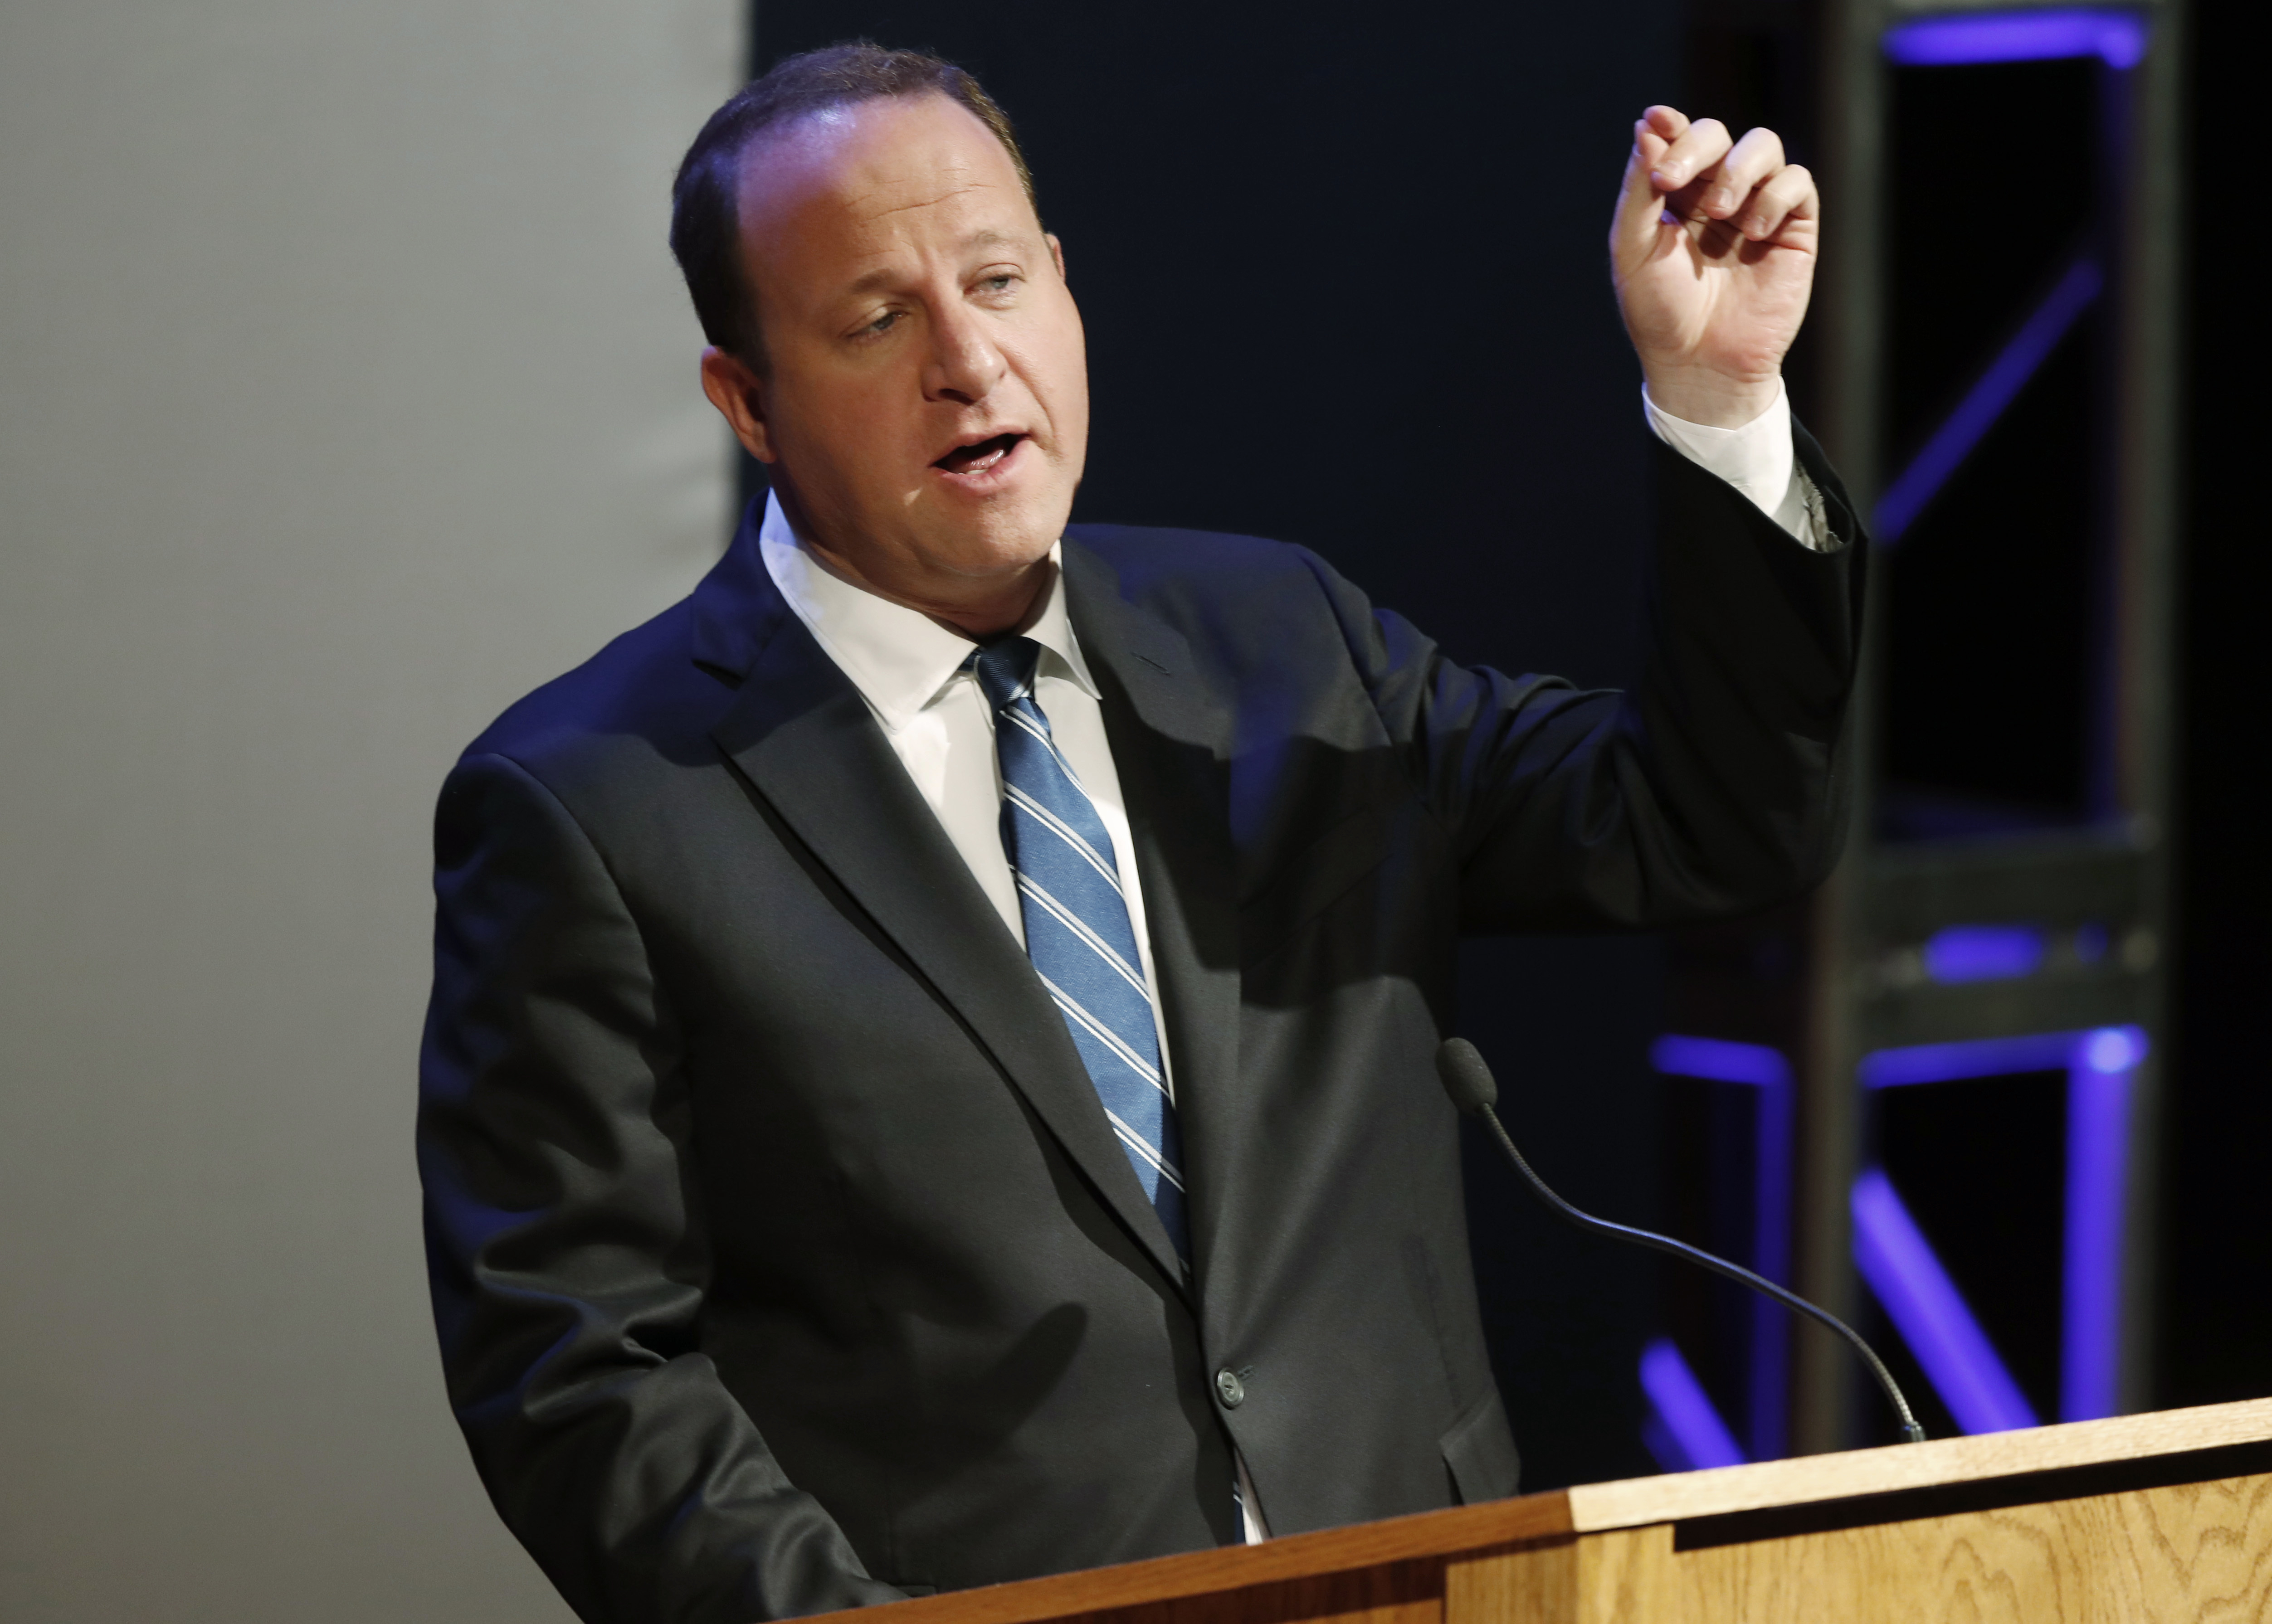 Colorado Gov. Jared Polis signs National Popular Vote Act